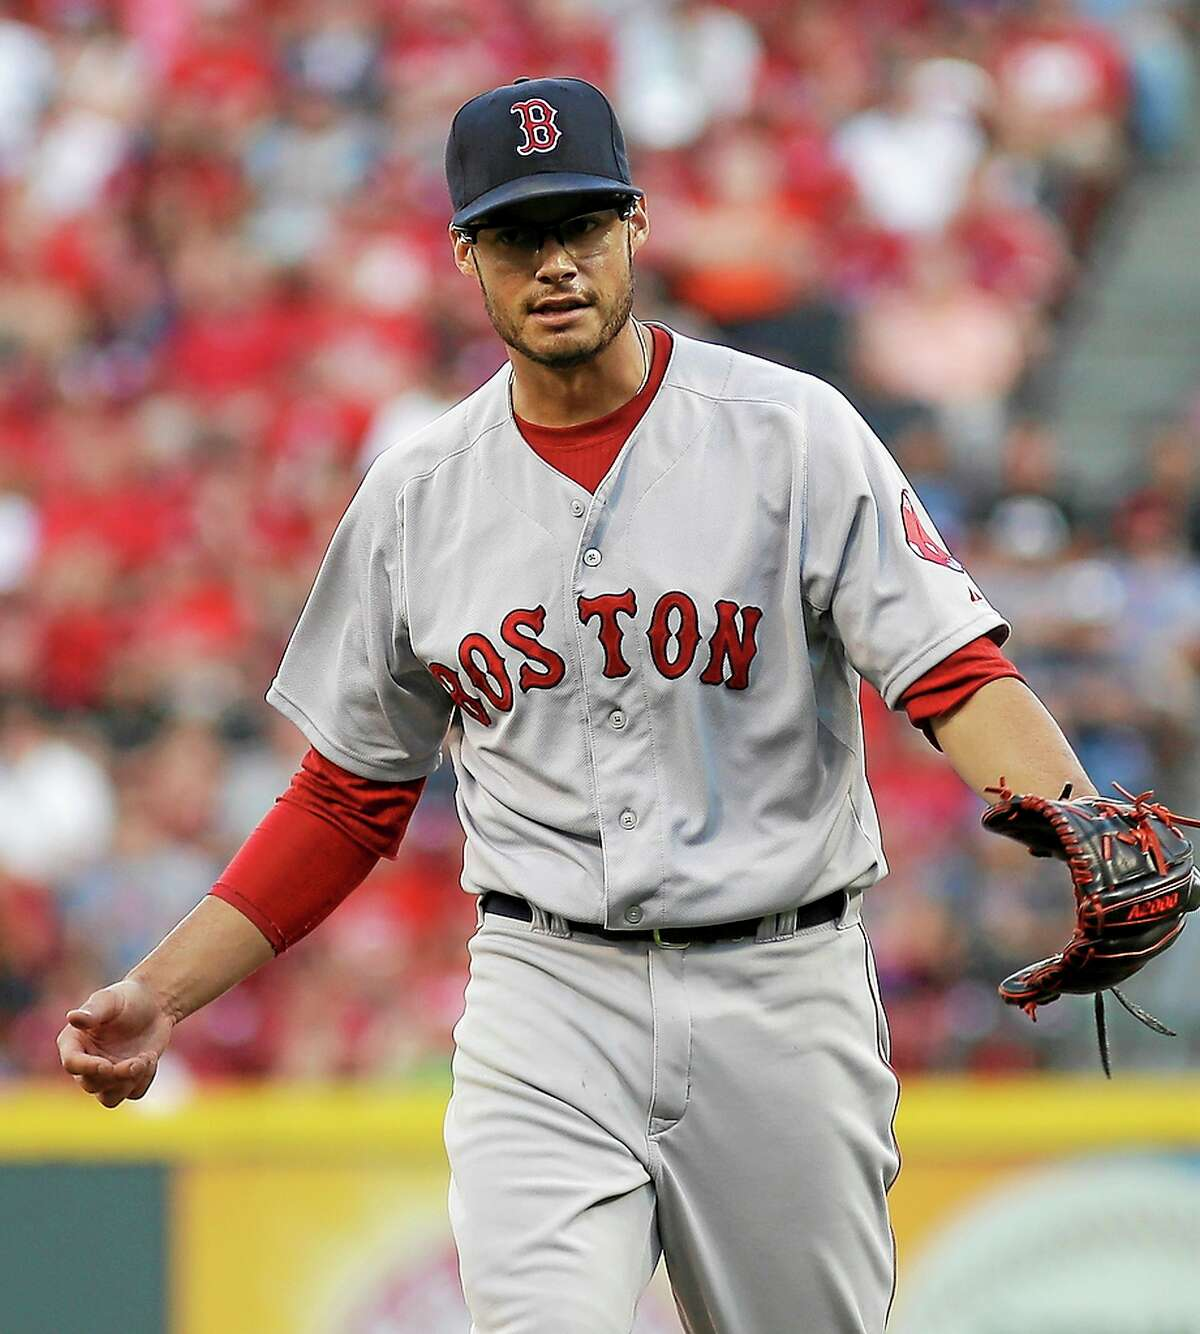 Red Sox pitcher Joe Kelly reacts after striking out the Reds' Chris Heisey in the first inning Tuesday.